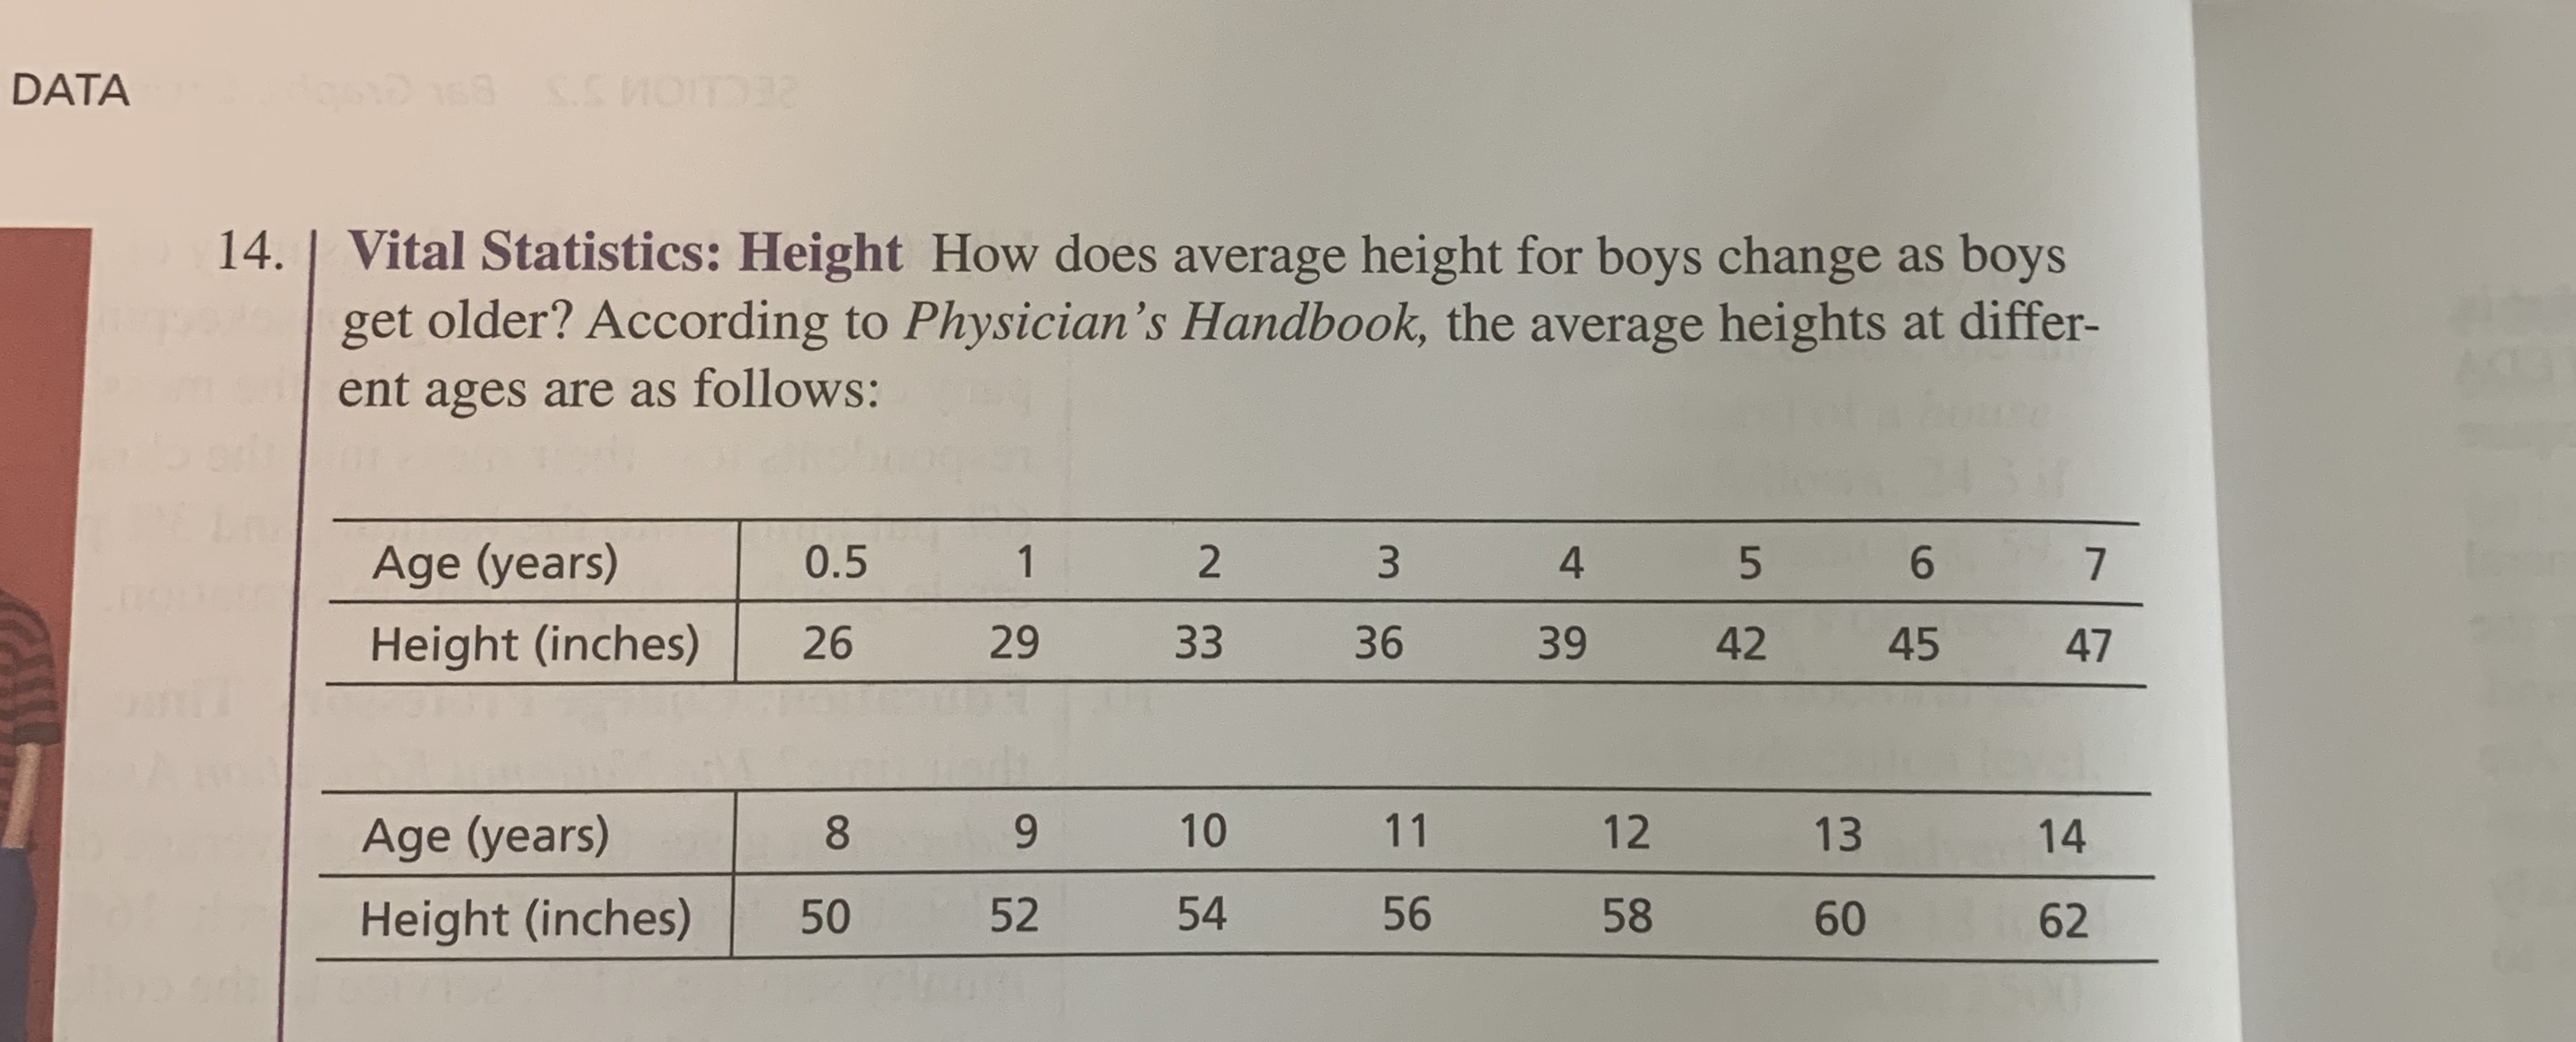 28 DATA 14. | Vital Statistics: Height How does average height for boys change as boys get older? According to Physician's Handbook, the average heights at differ- ent ages are as follows: Age (years) 1 2 0.5 3 4 6 5 7 33 36 Height (inches) 26 29 39 42 45 47 10 11 12 9 Age (years) 13 14 54 56 52 58 50 Height (inches) 60 62